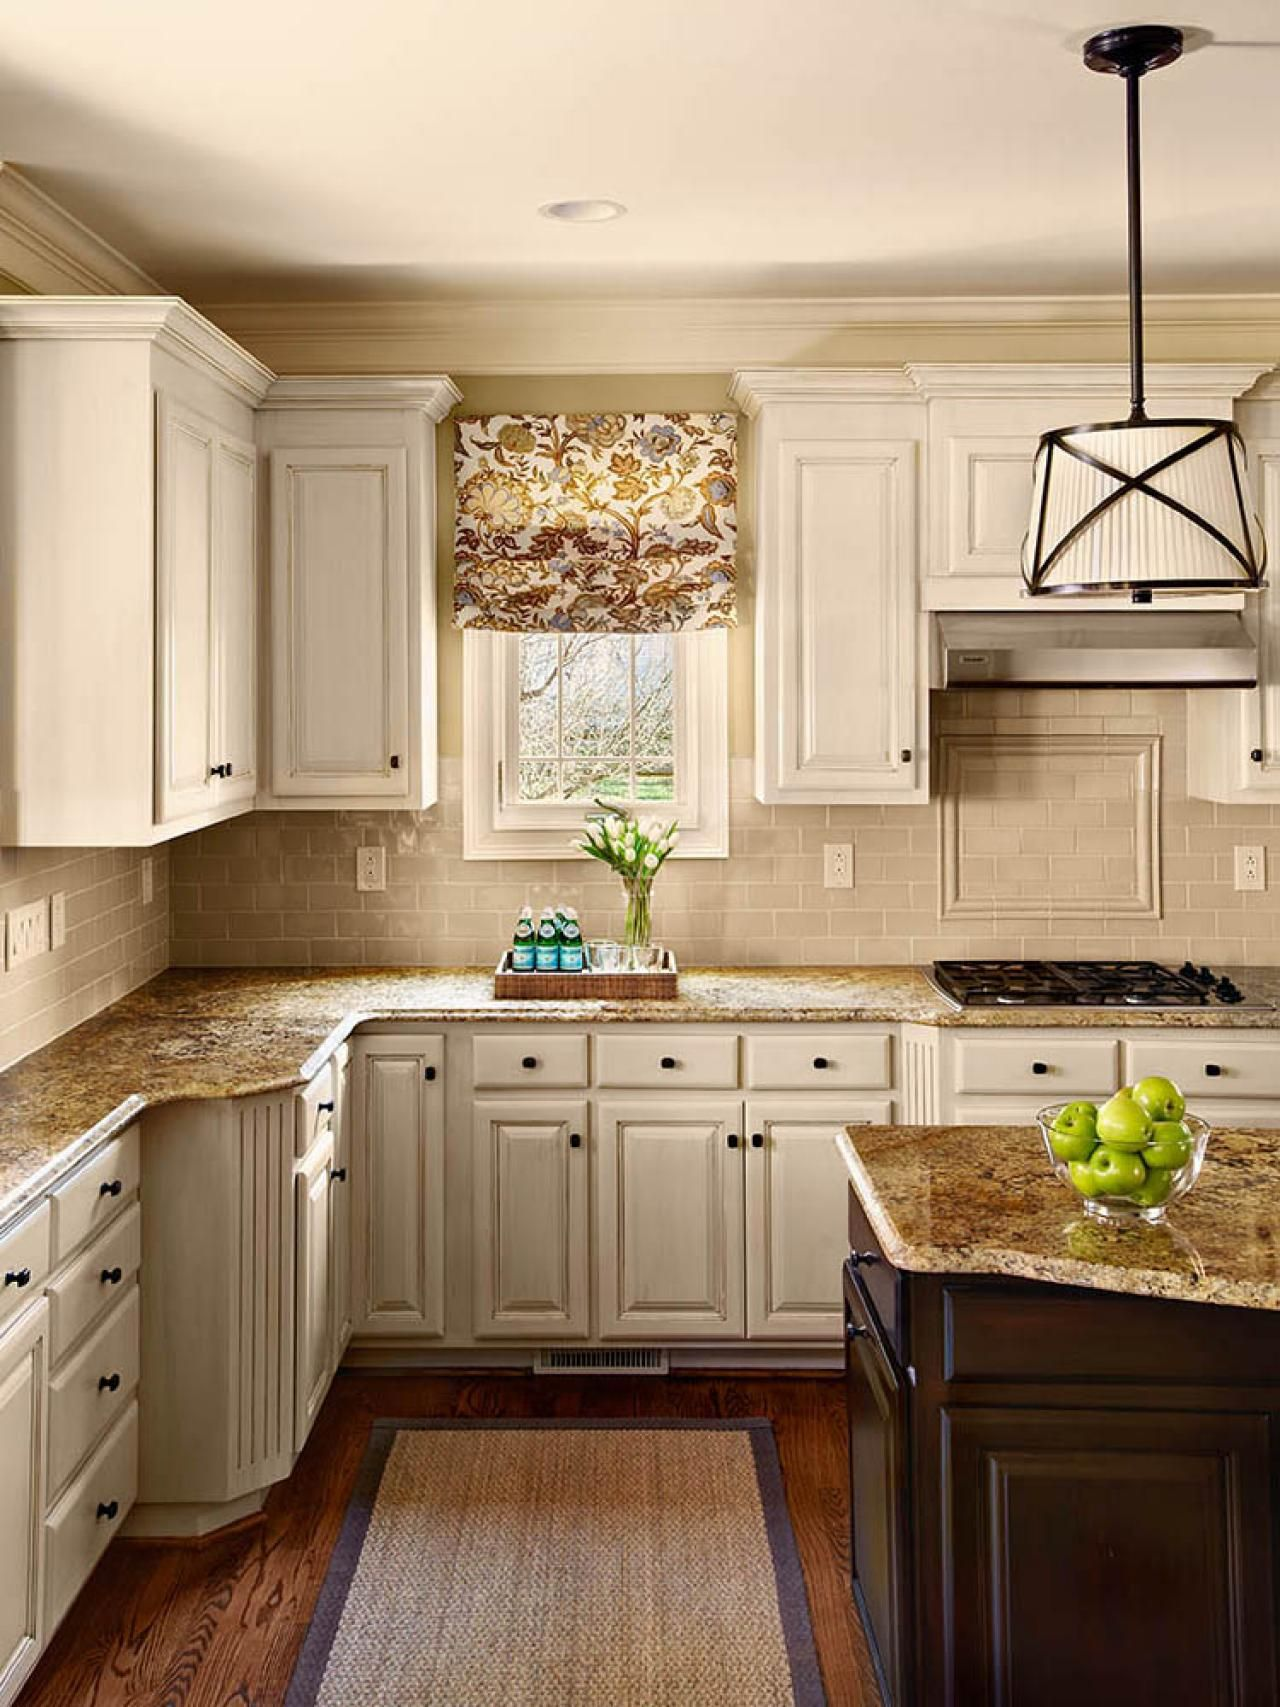 Kitchen Pantry Storage And Cabinets Kitchen Cabinet Inspiration Kitchen Remodel Hgtv Kitchens